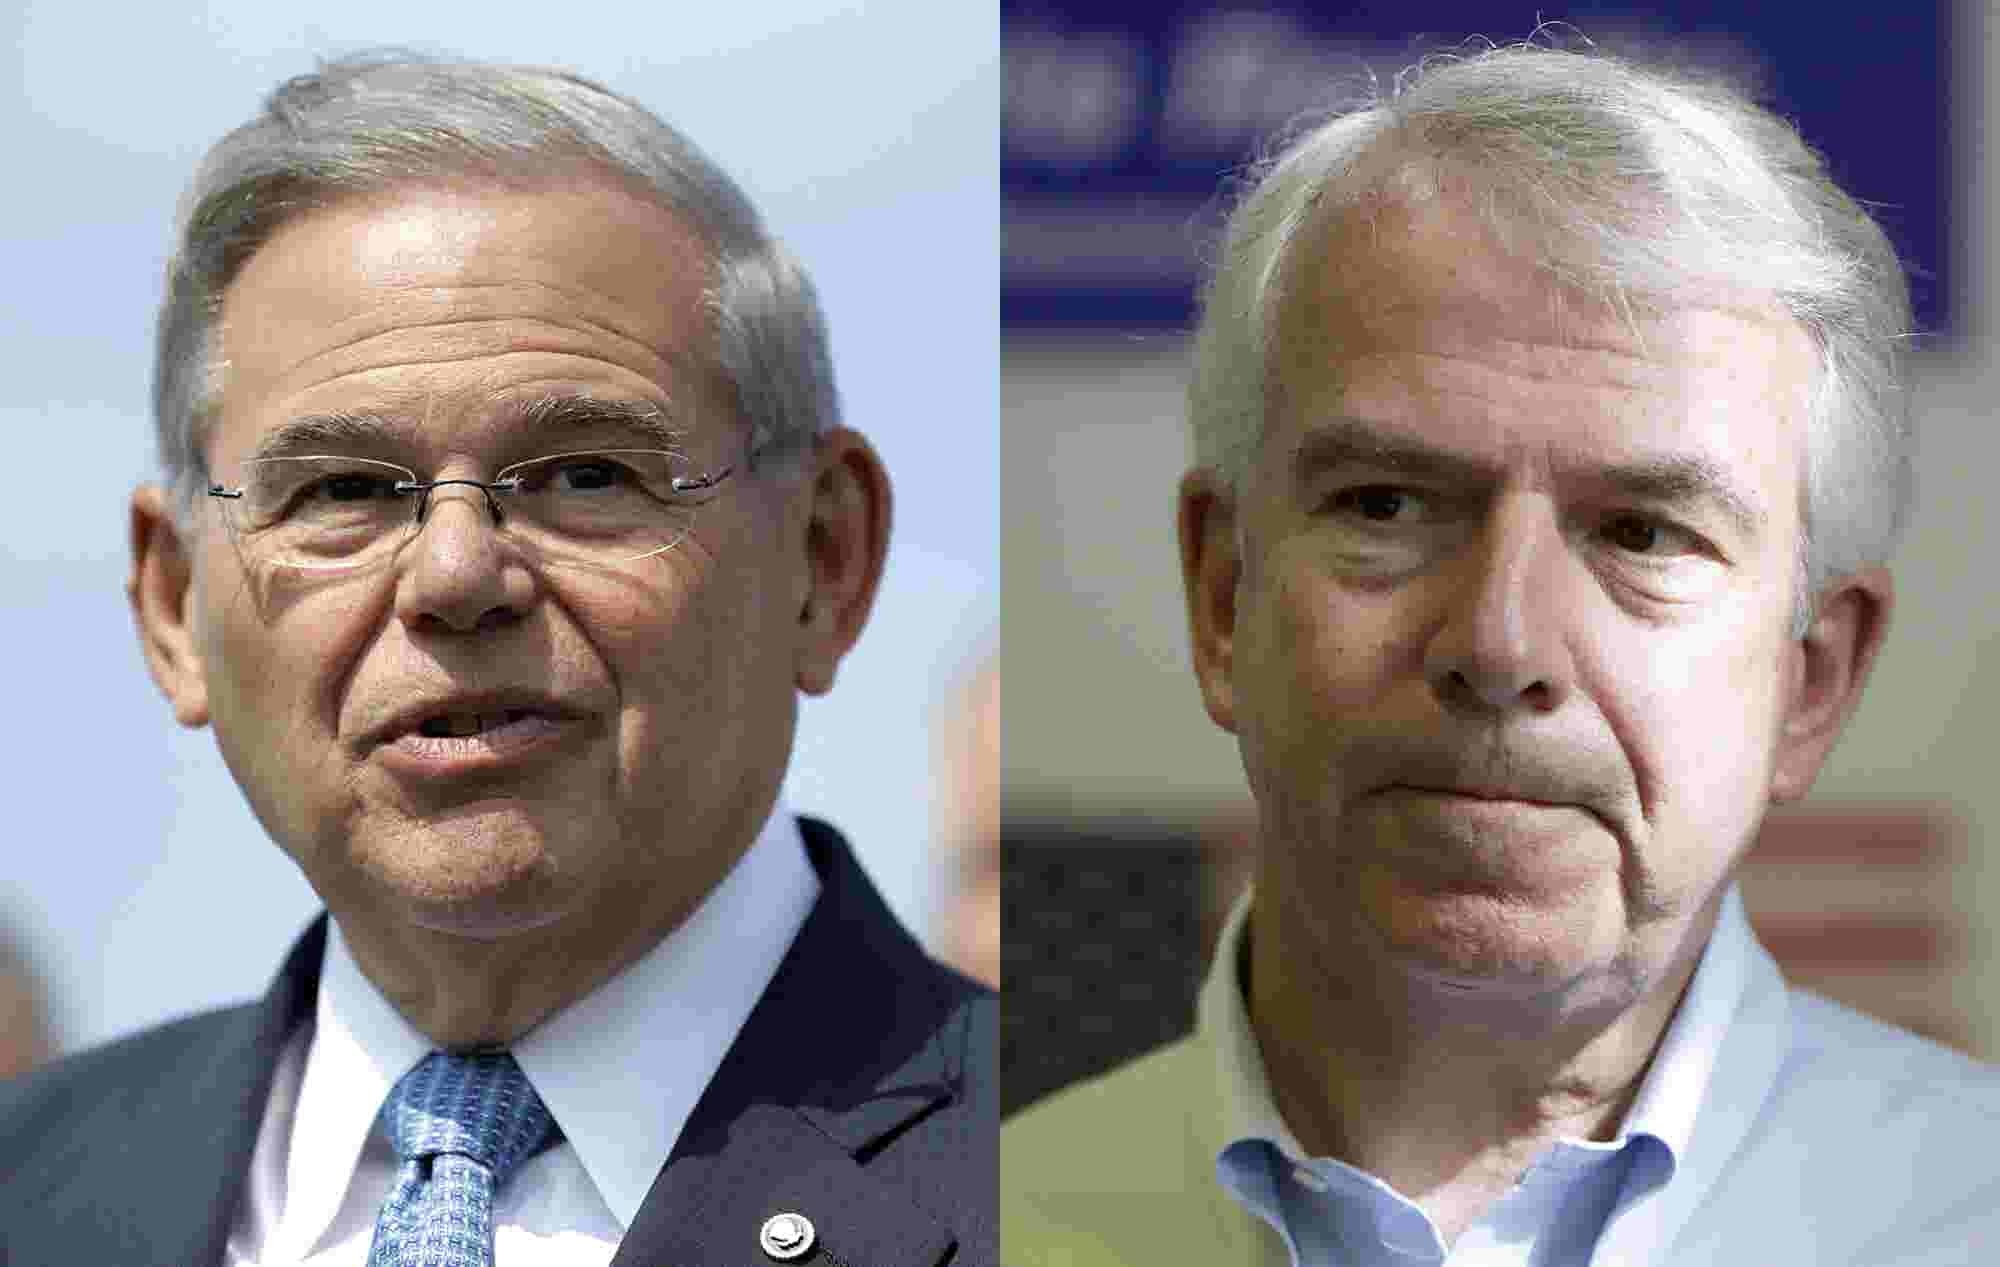 Senate Candidates Stake Out A Range Of Positions On >> 2018 Nj Senate Candidates Hugin And Menendez What You Really Want To Know About Them